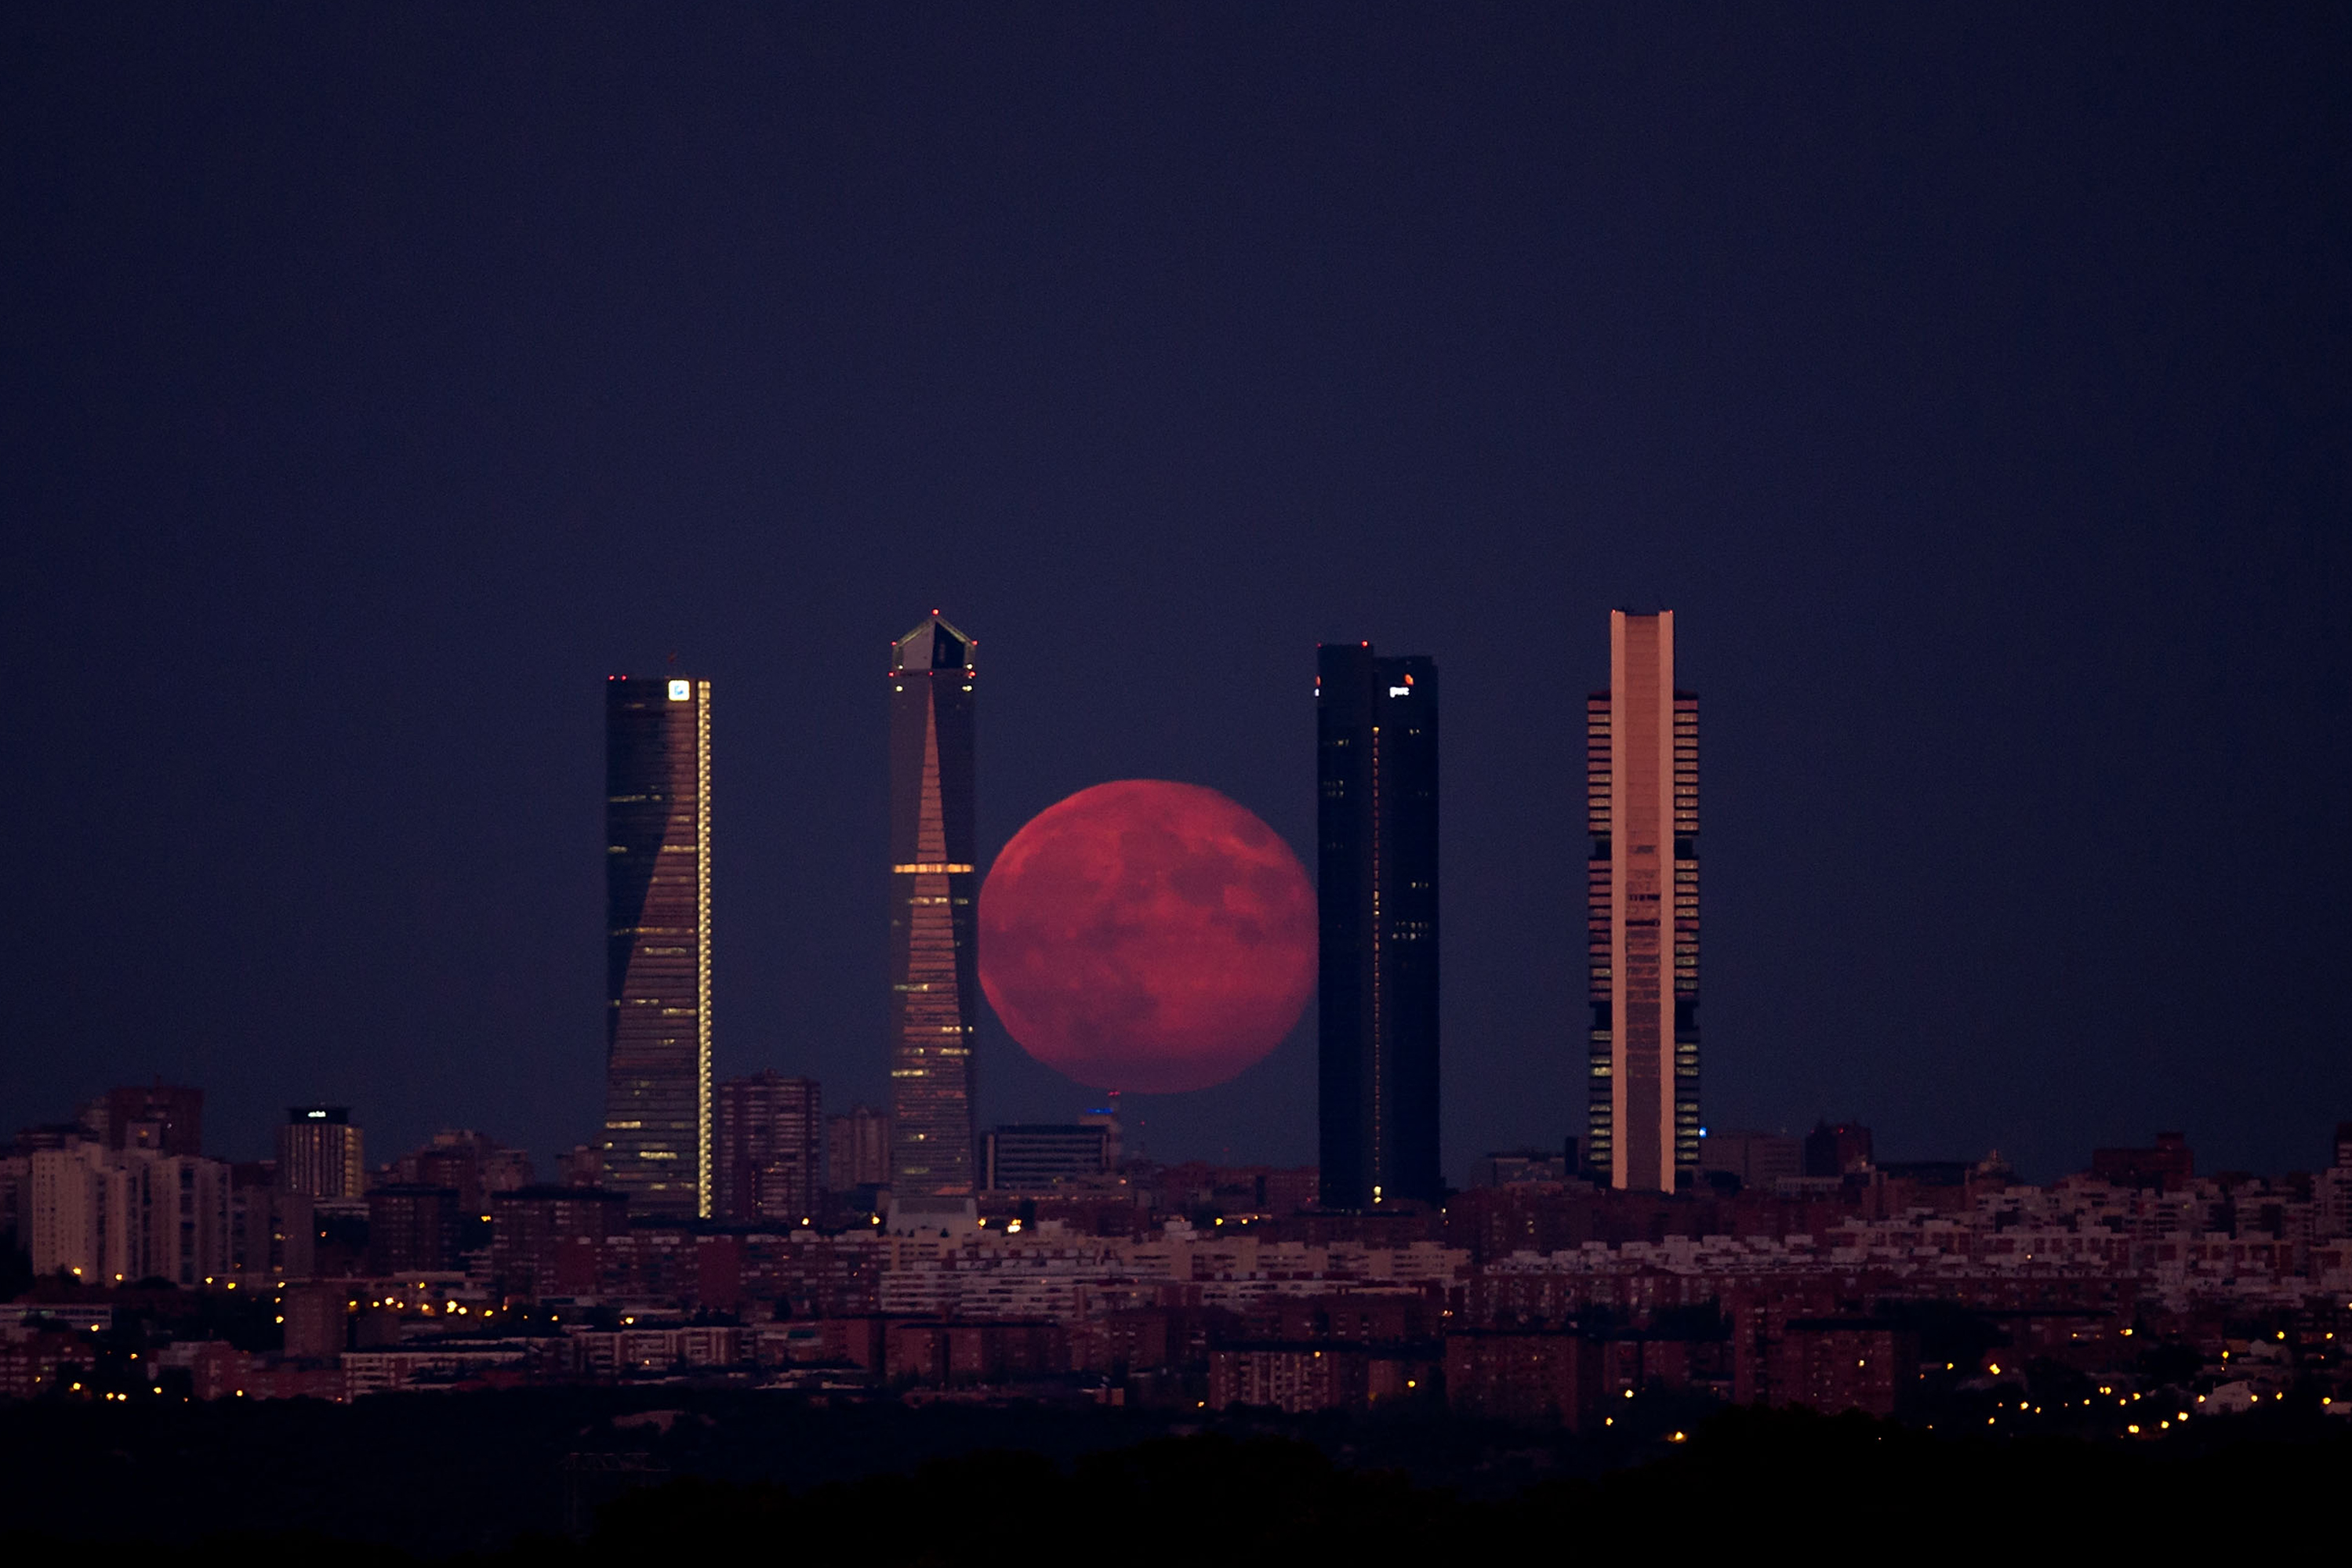 The moon shines through the Four Towers Madrid skyscrapers on August 11, 2014 in Madrid, Spain.